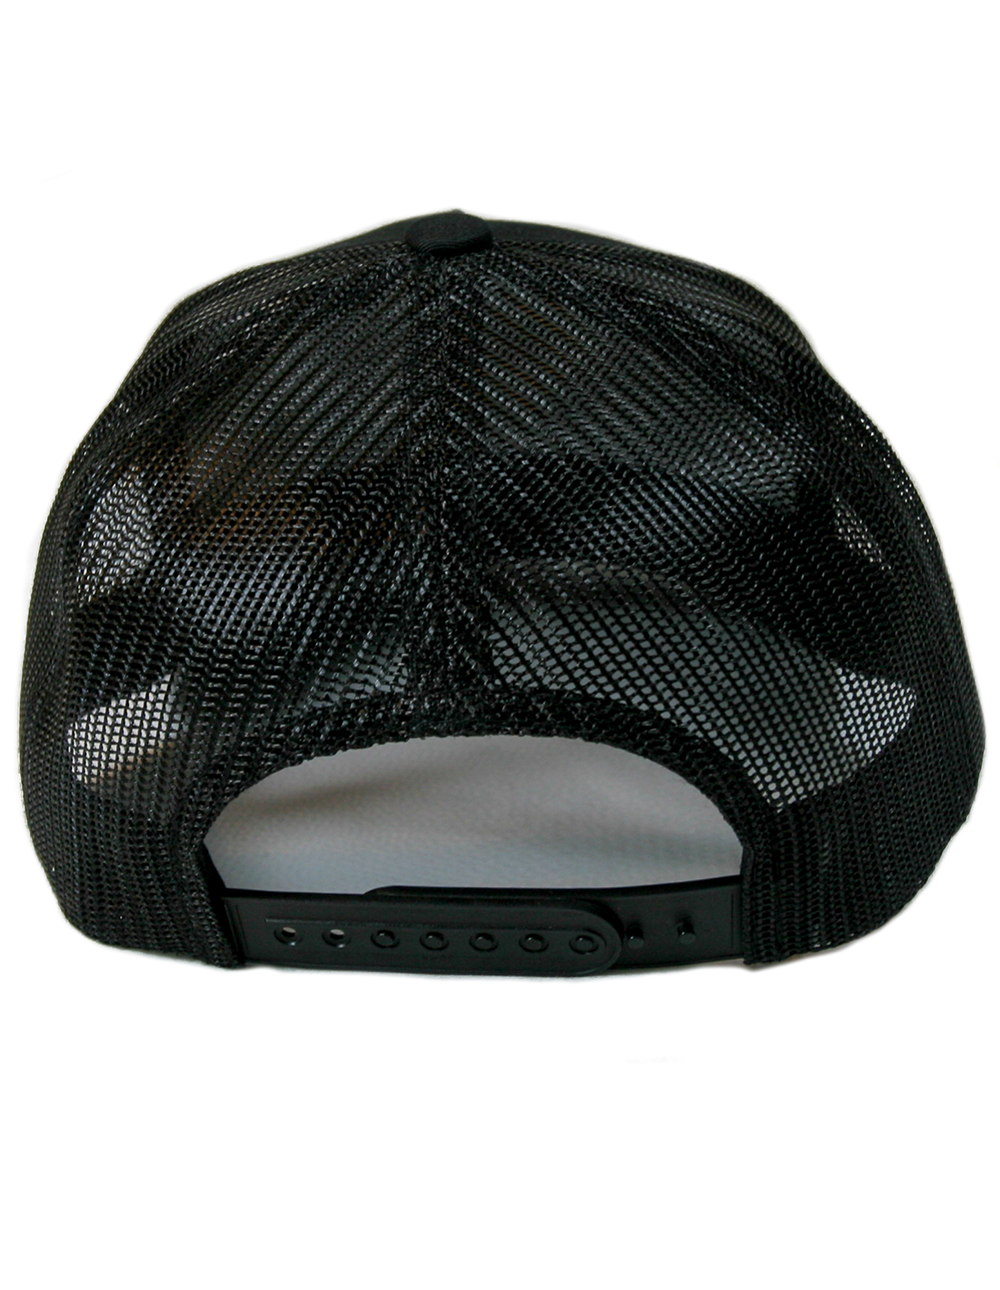 Art and Ink Brewear Trucker Cap